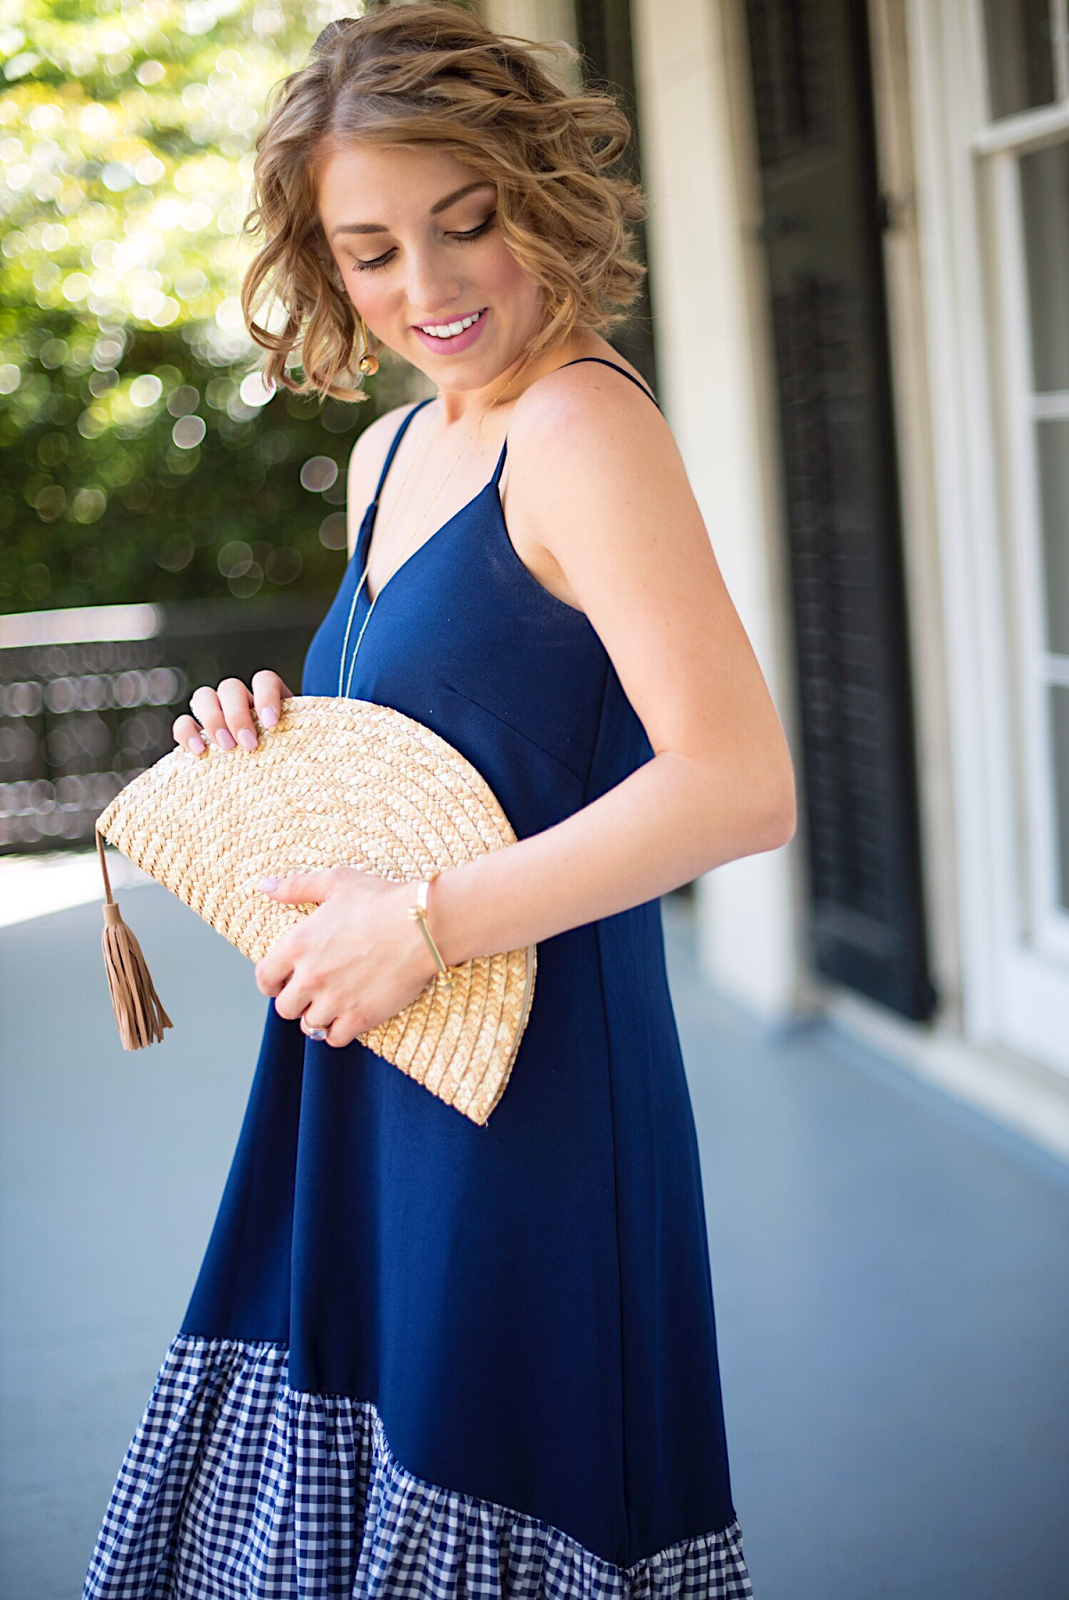 Half Moon Straw Clutch - Click through to see more on Something Delightful Blog